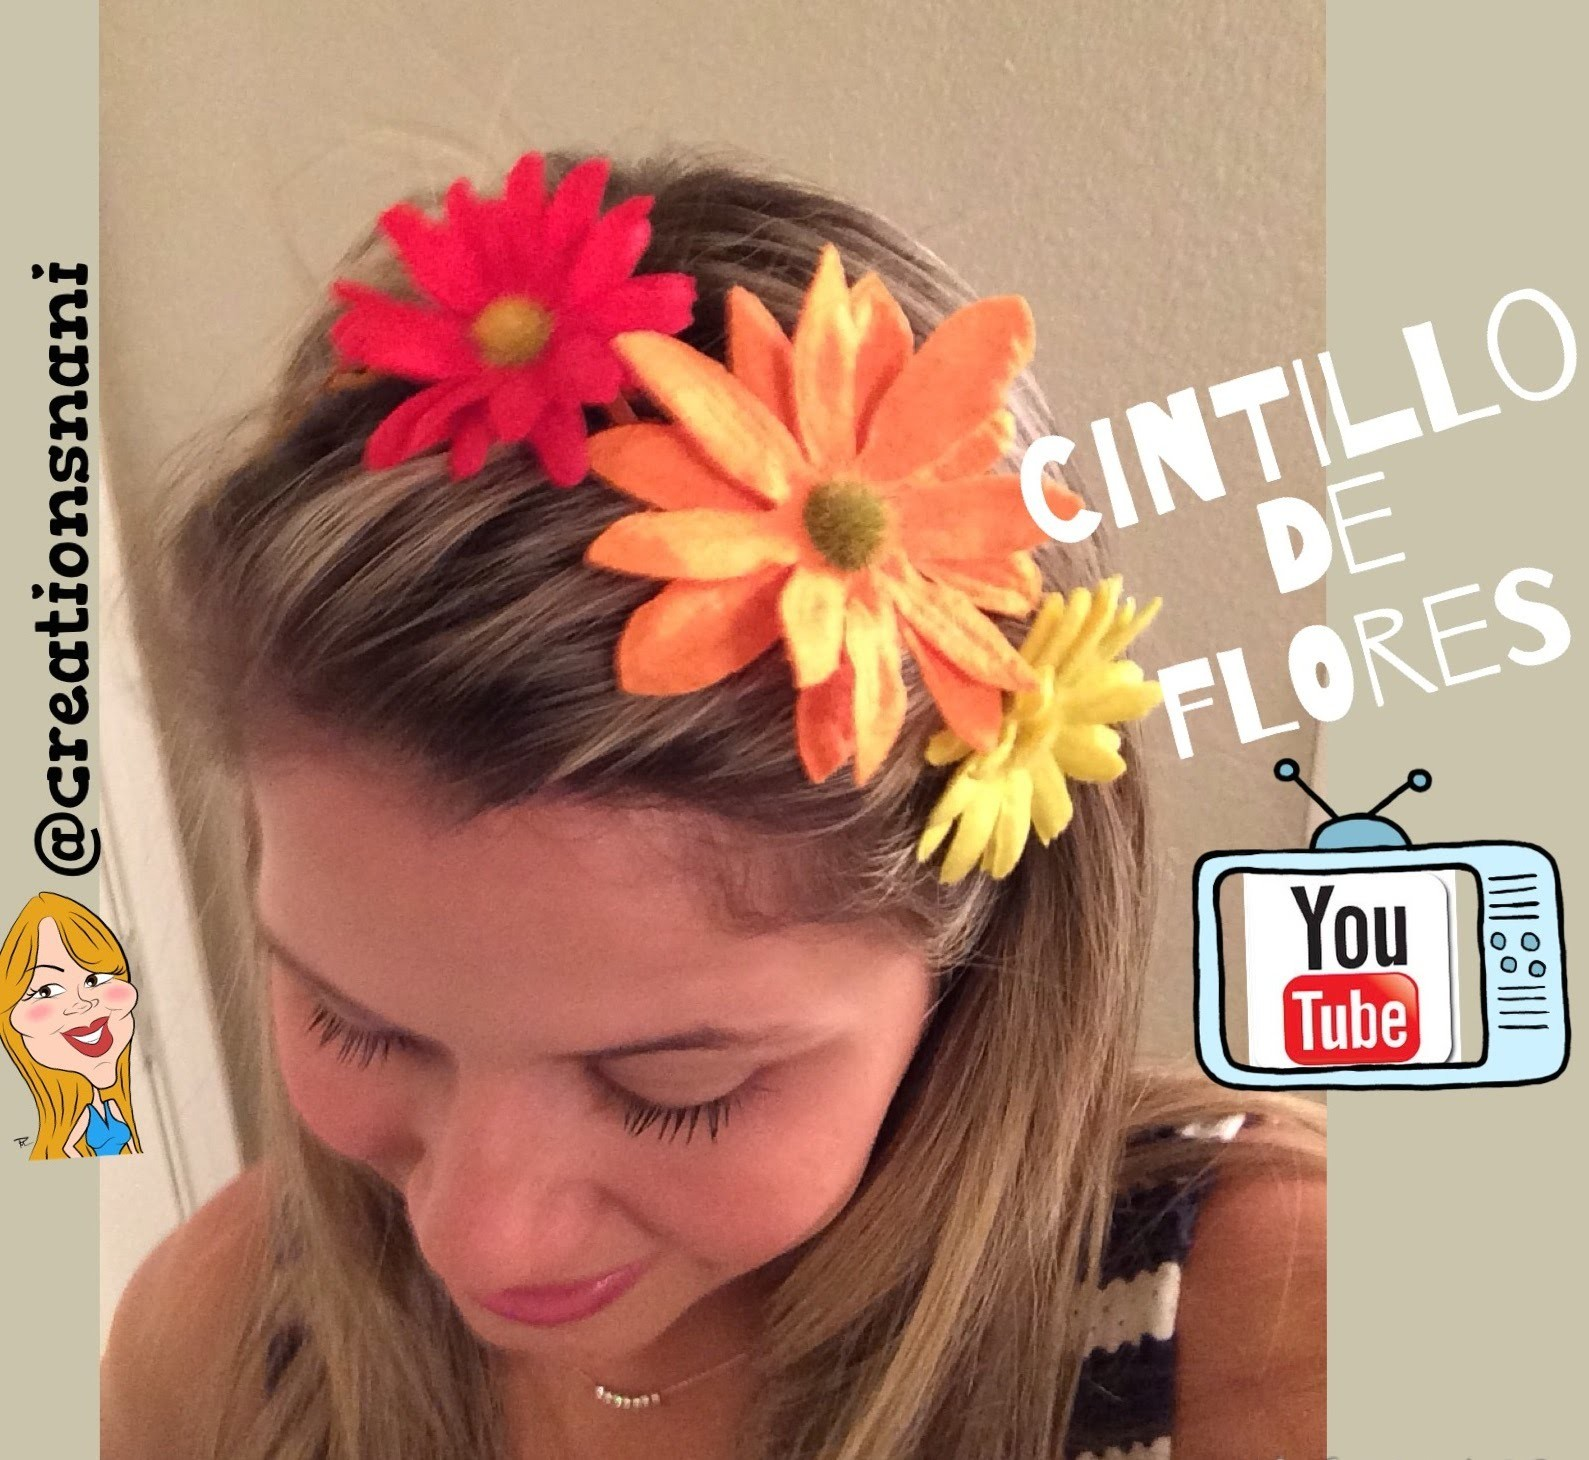 Cintillo de flores - Flower Headbands | Creations Nani